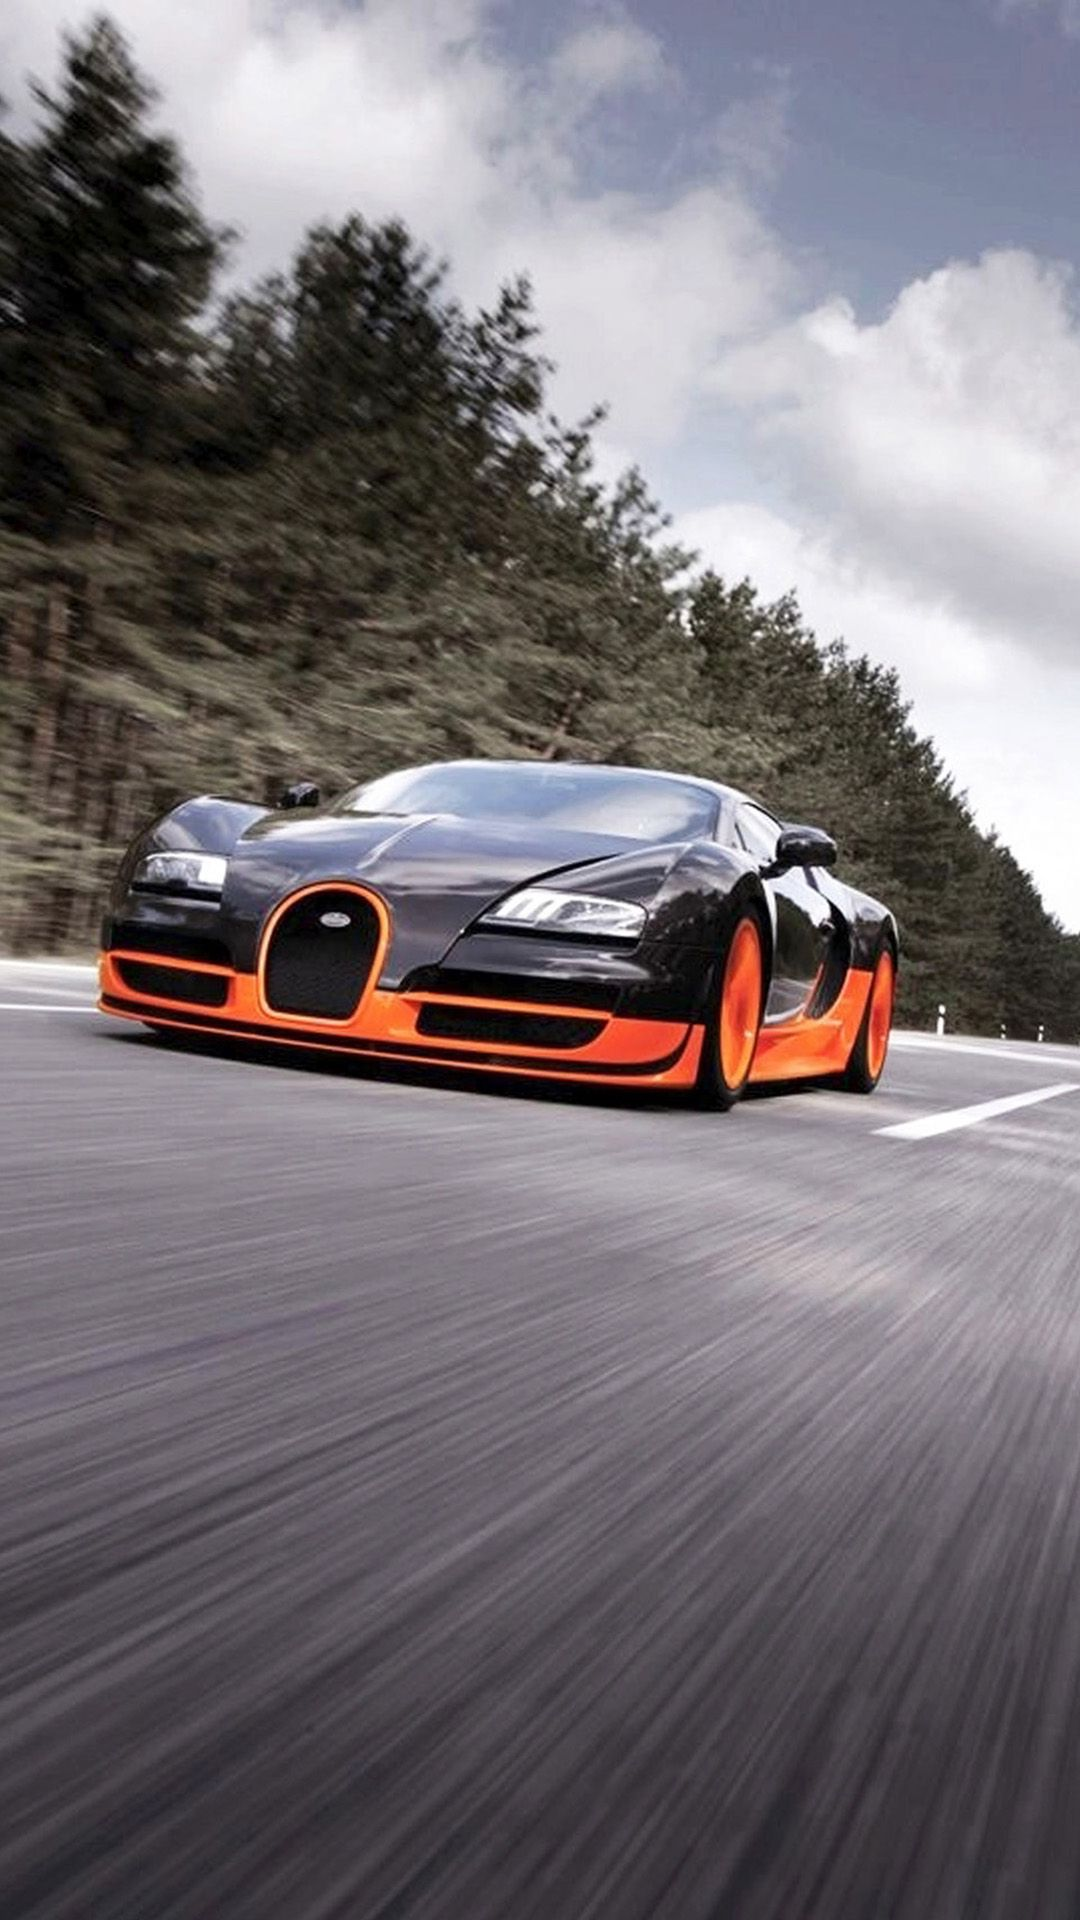 Car Wallpaper For Android Download Hd Pictures Free Bugatti Veyron Super Sport Bugatti Veyron Bugatti Cars